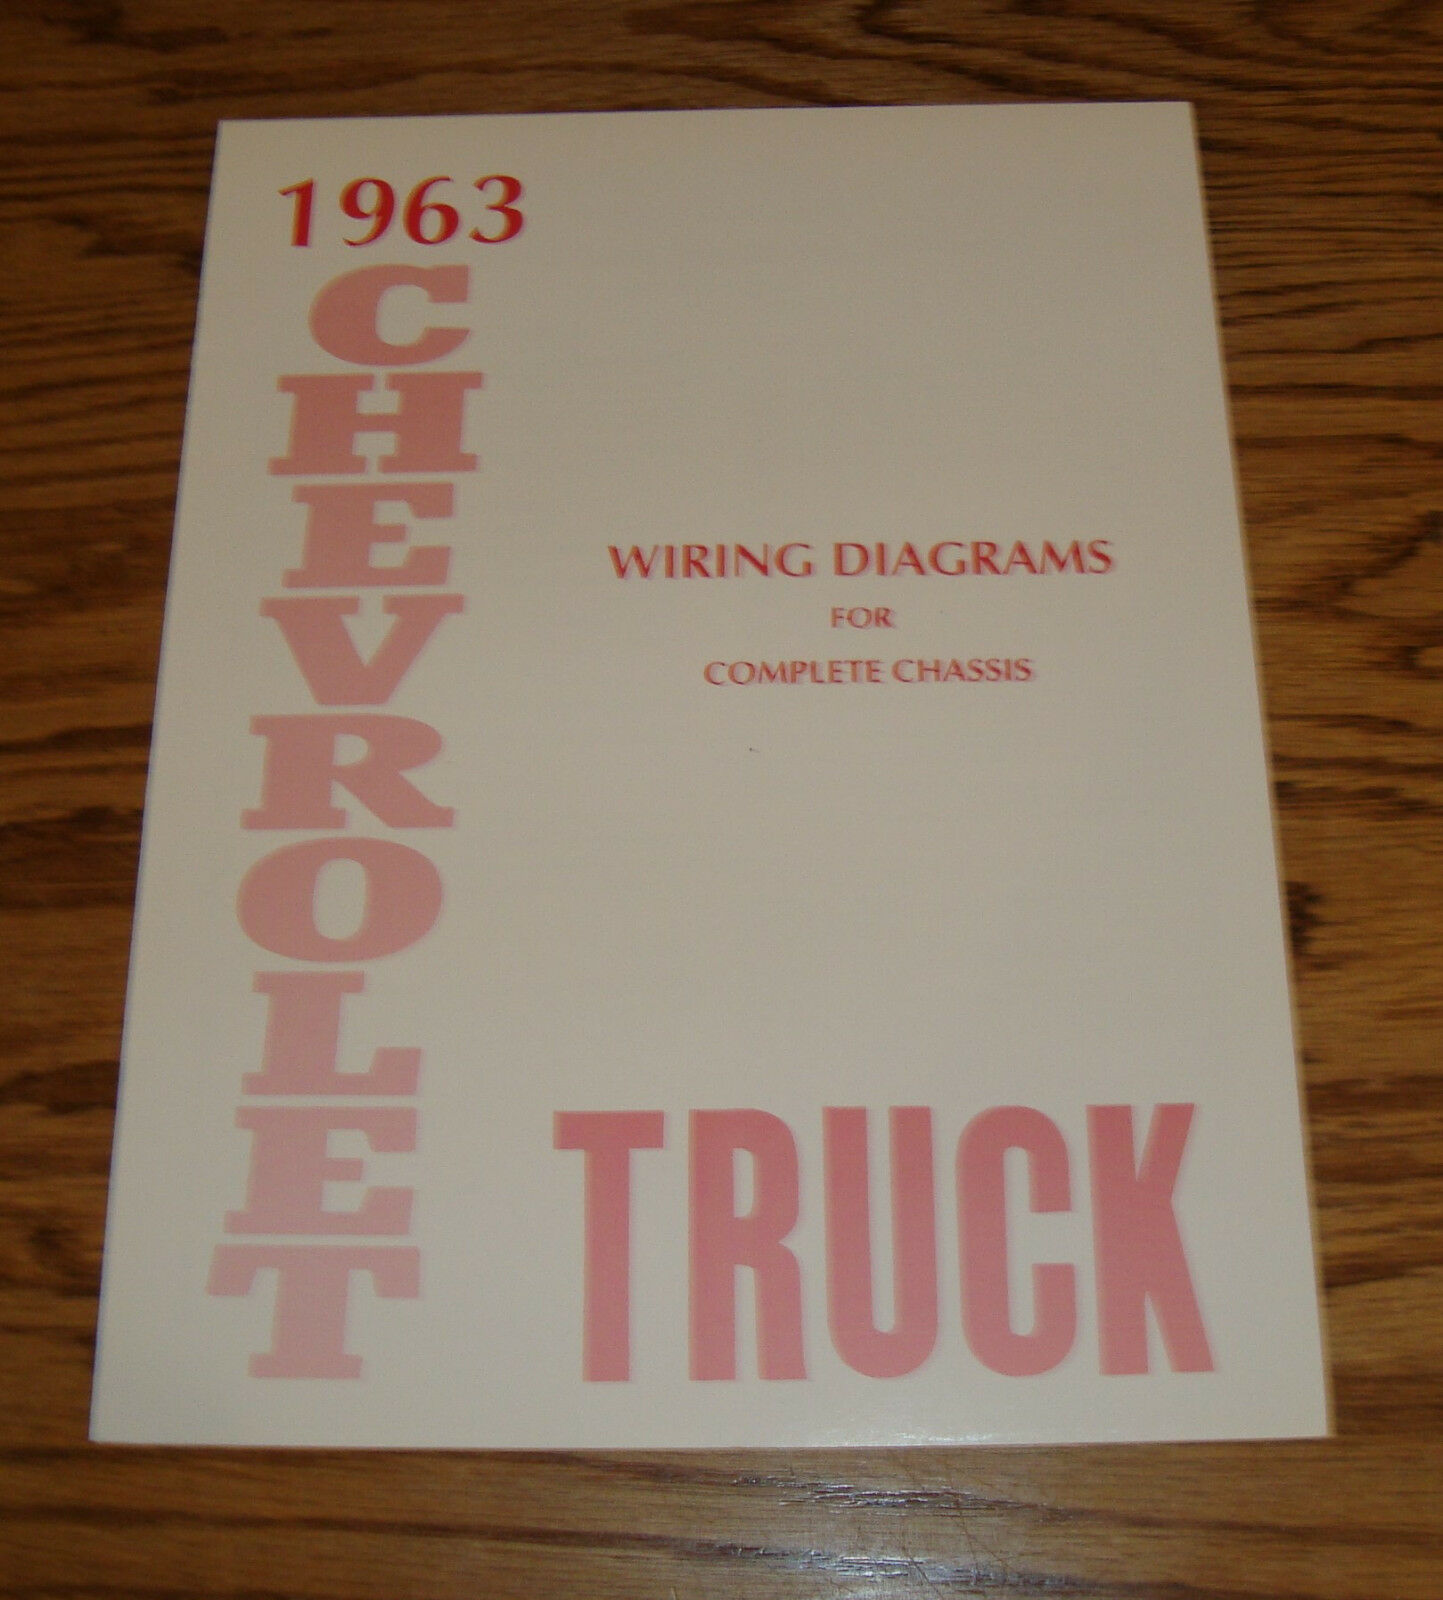 1963 Chevrolet Truck Wiring Diagram Manual For Complete Chassis 63 Chevy Pickup